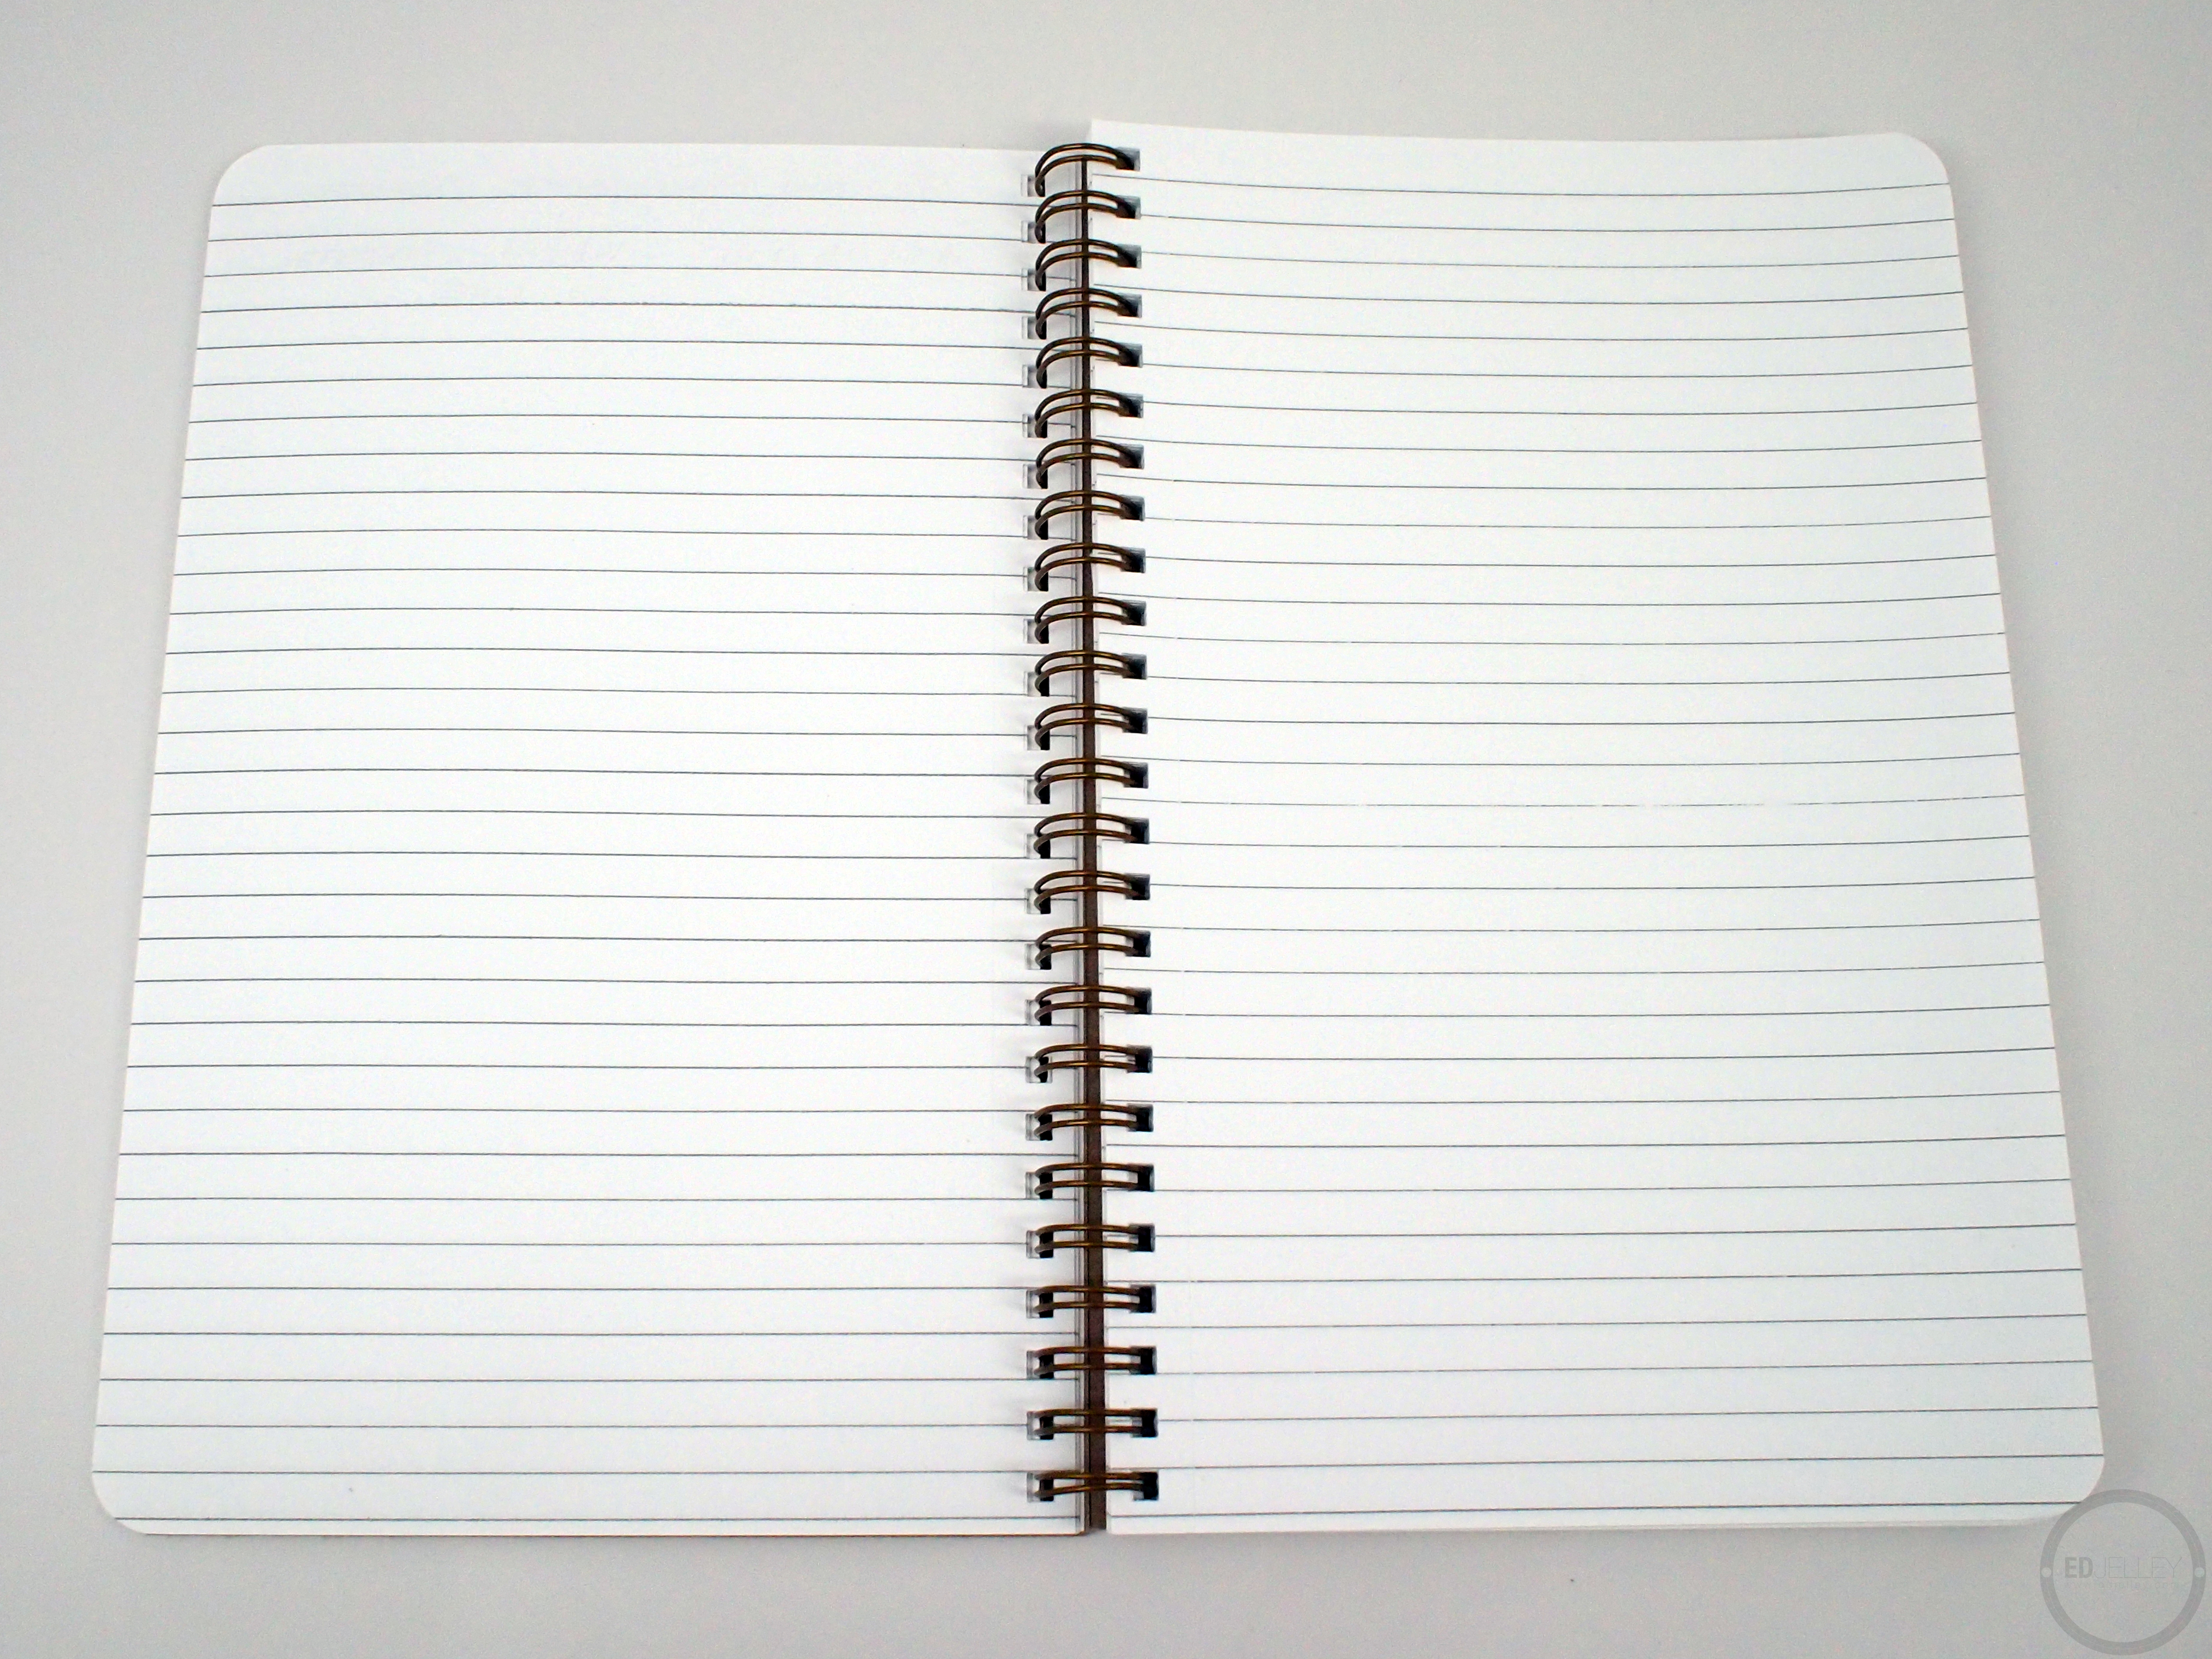 Writing notebooks for students